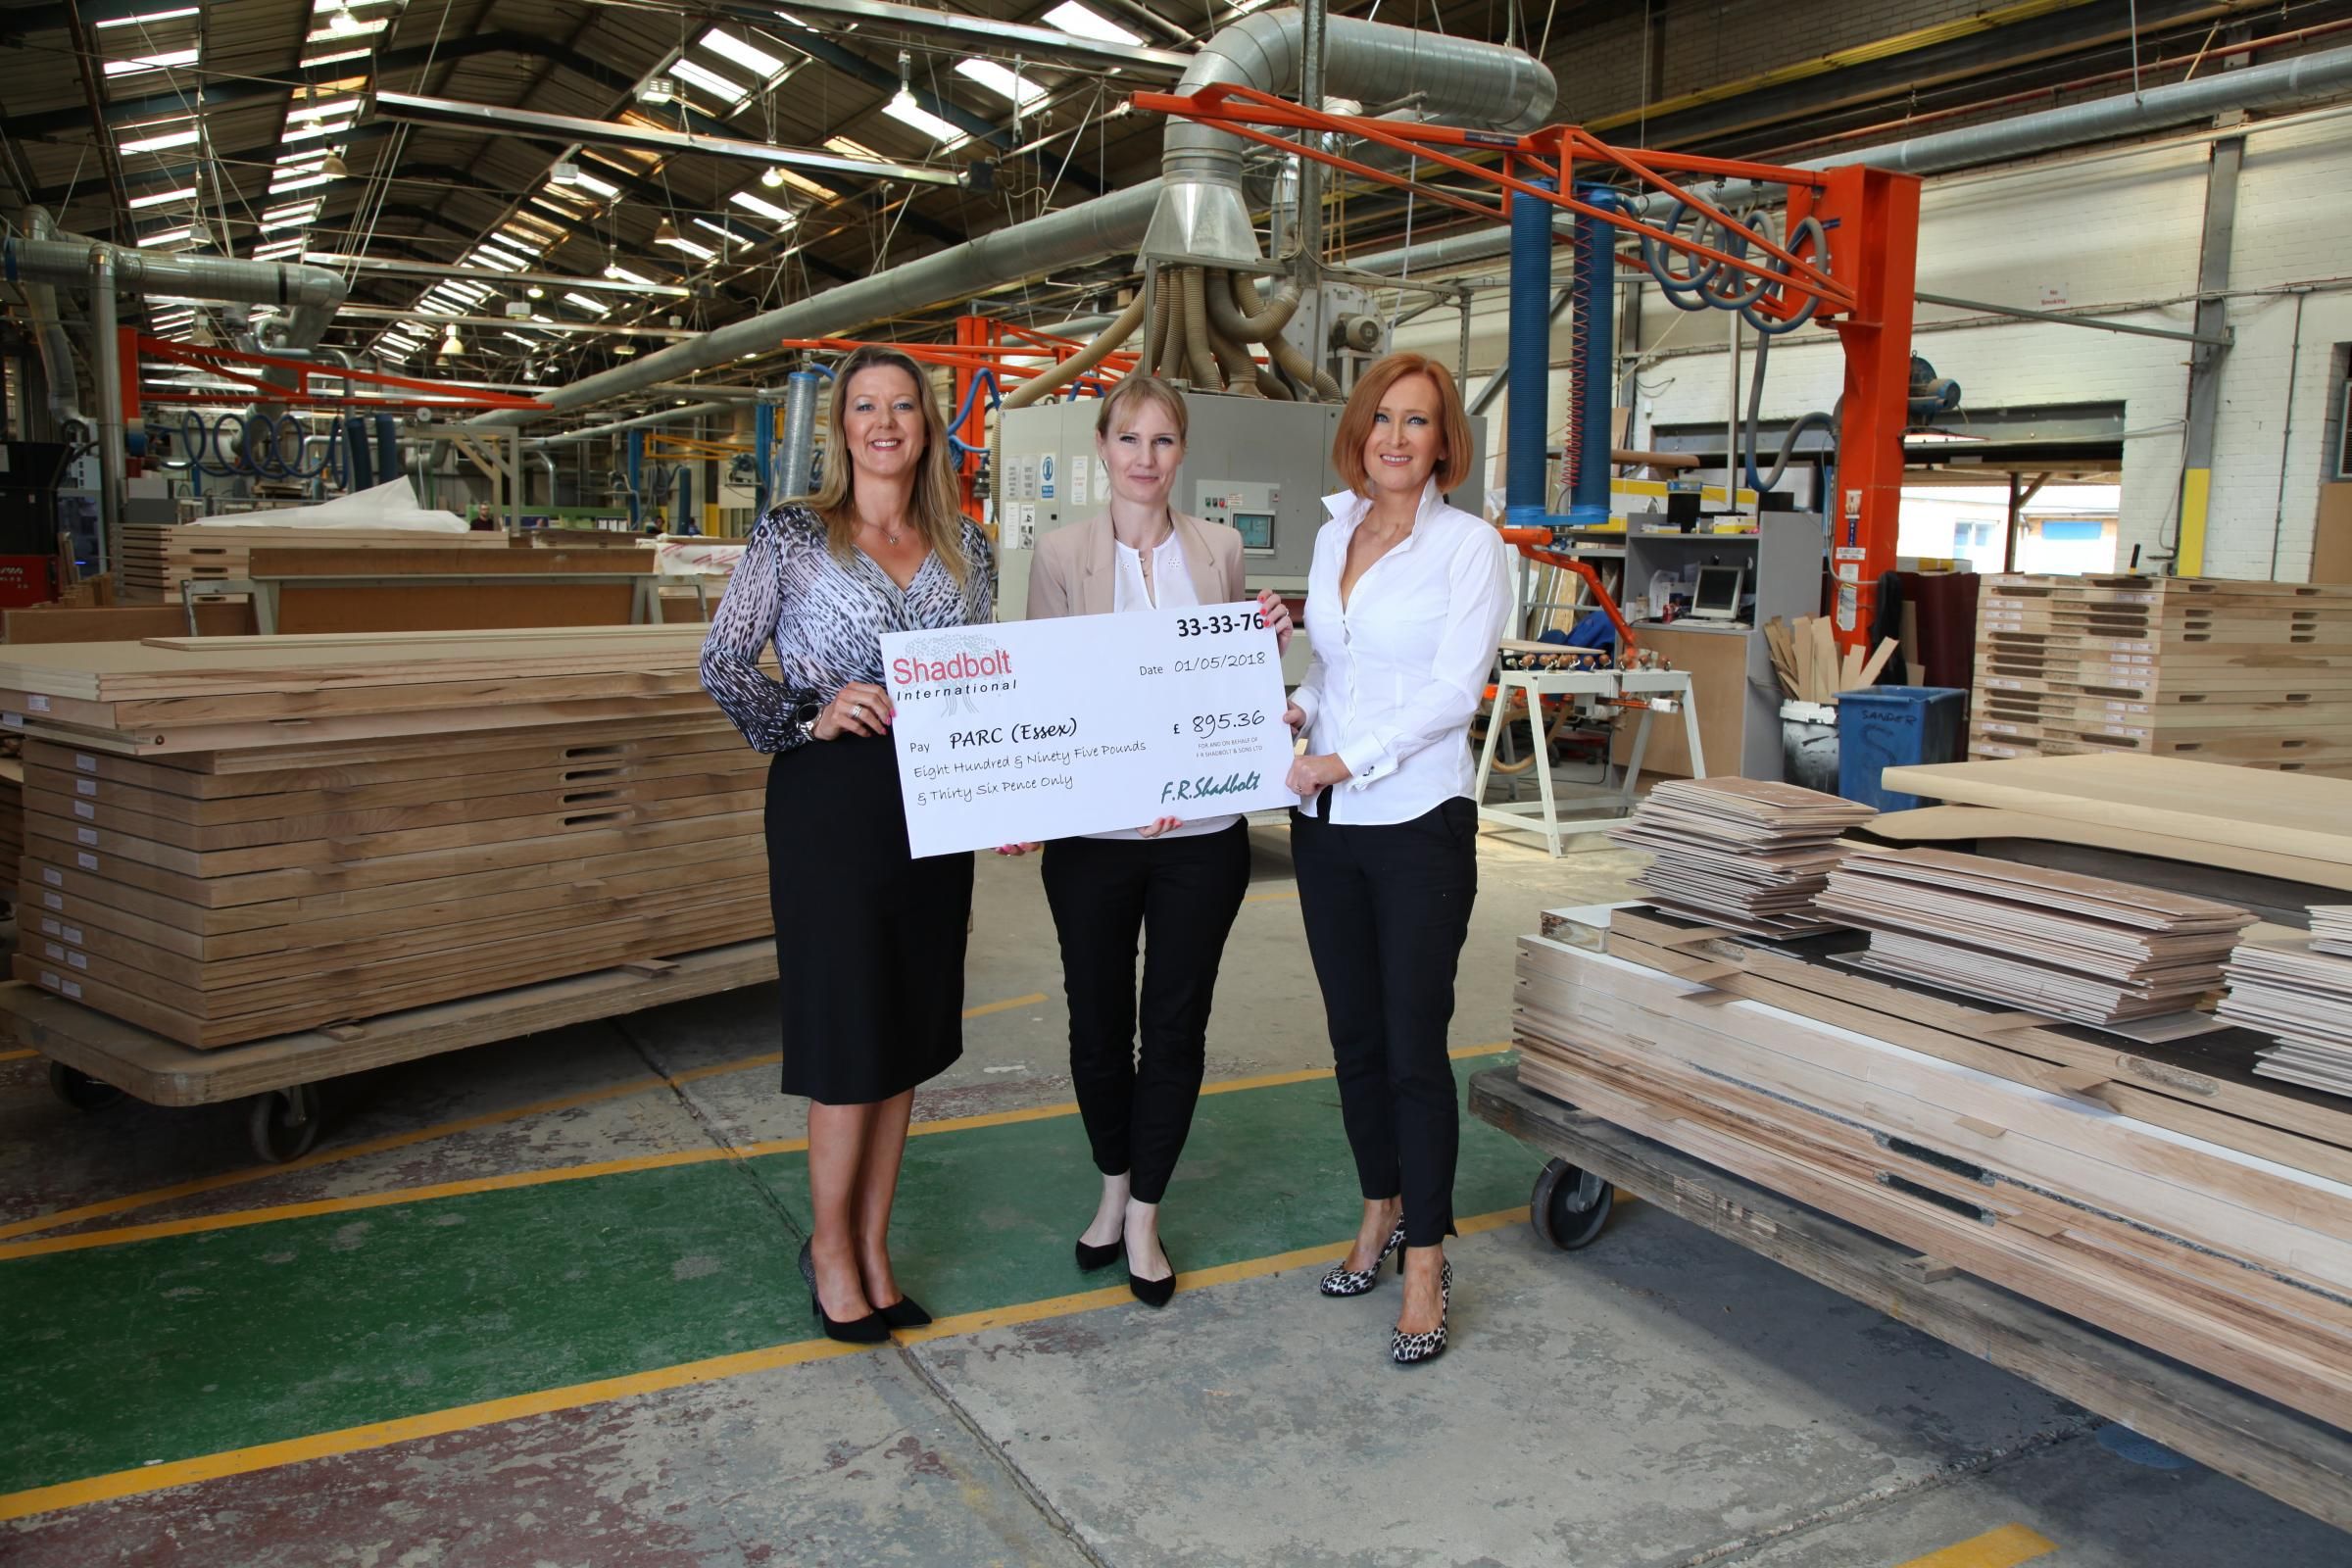 DONATION: Amanda Farrow and Angie Rains handing the cheque over to PARC representative Friederike Walter